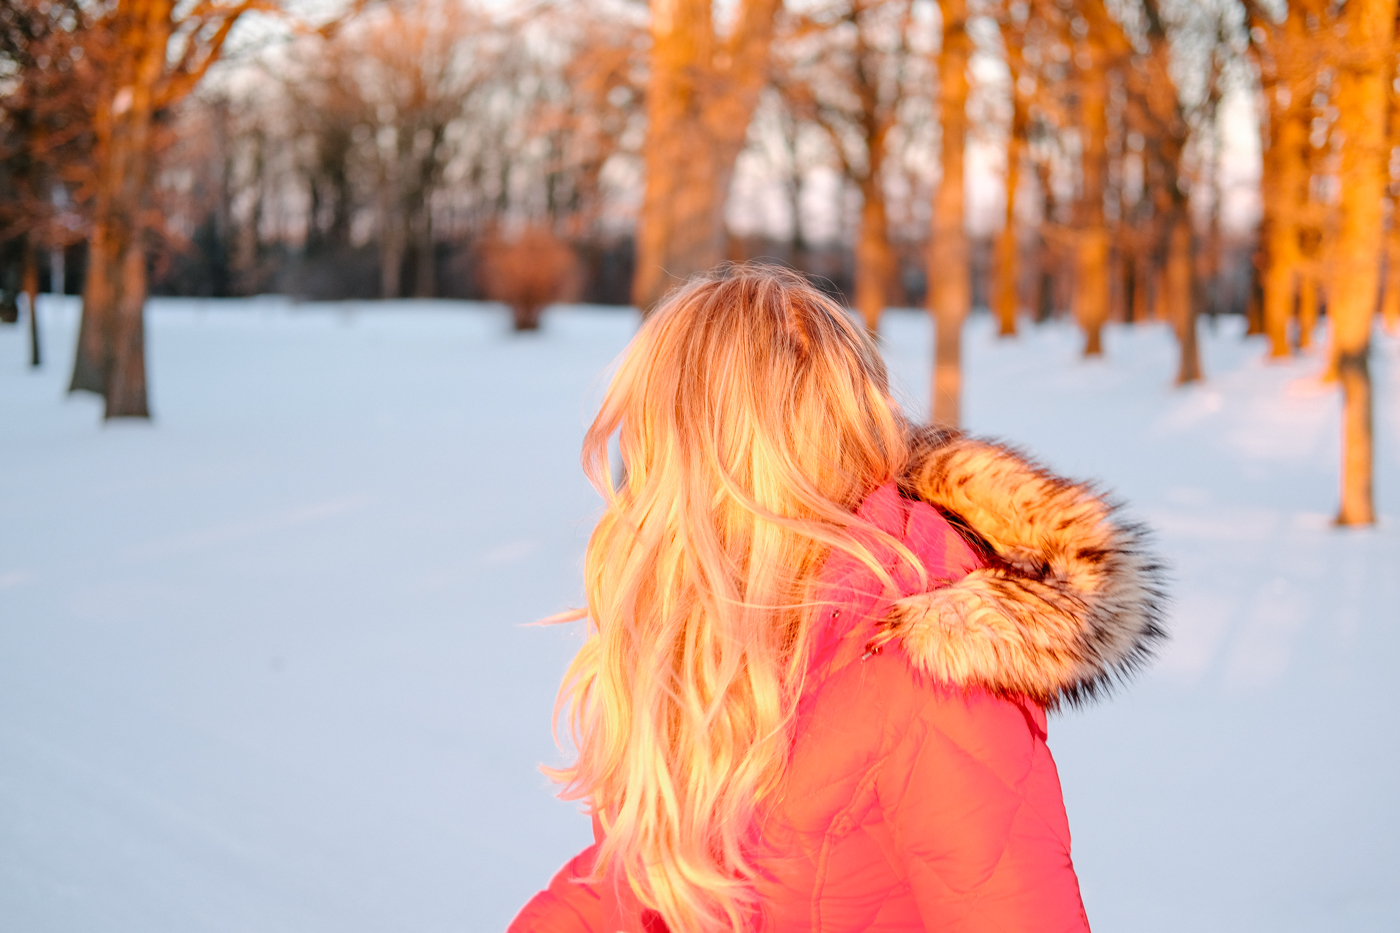 Debora Dahl in the snow with the sunset on her hair